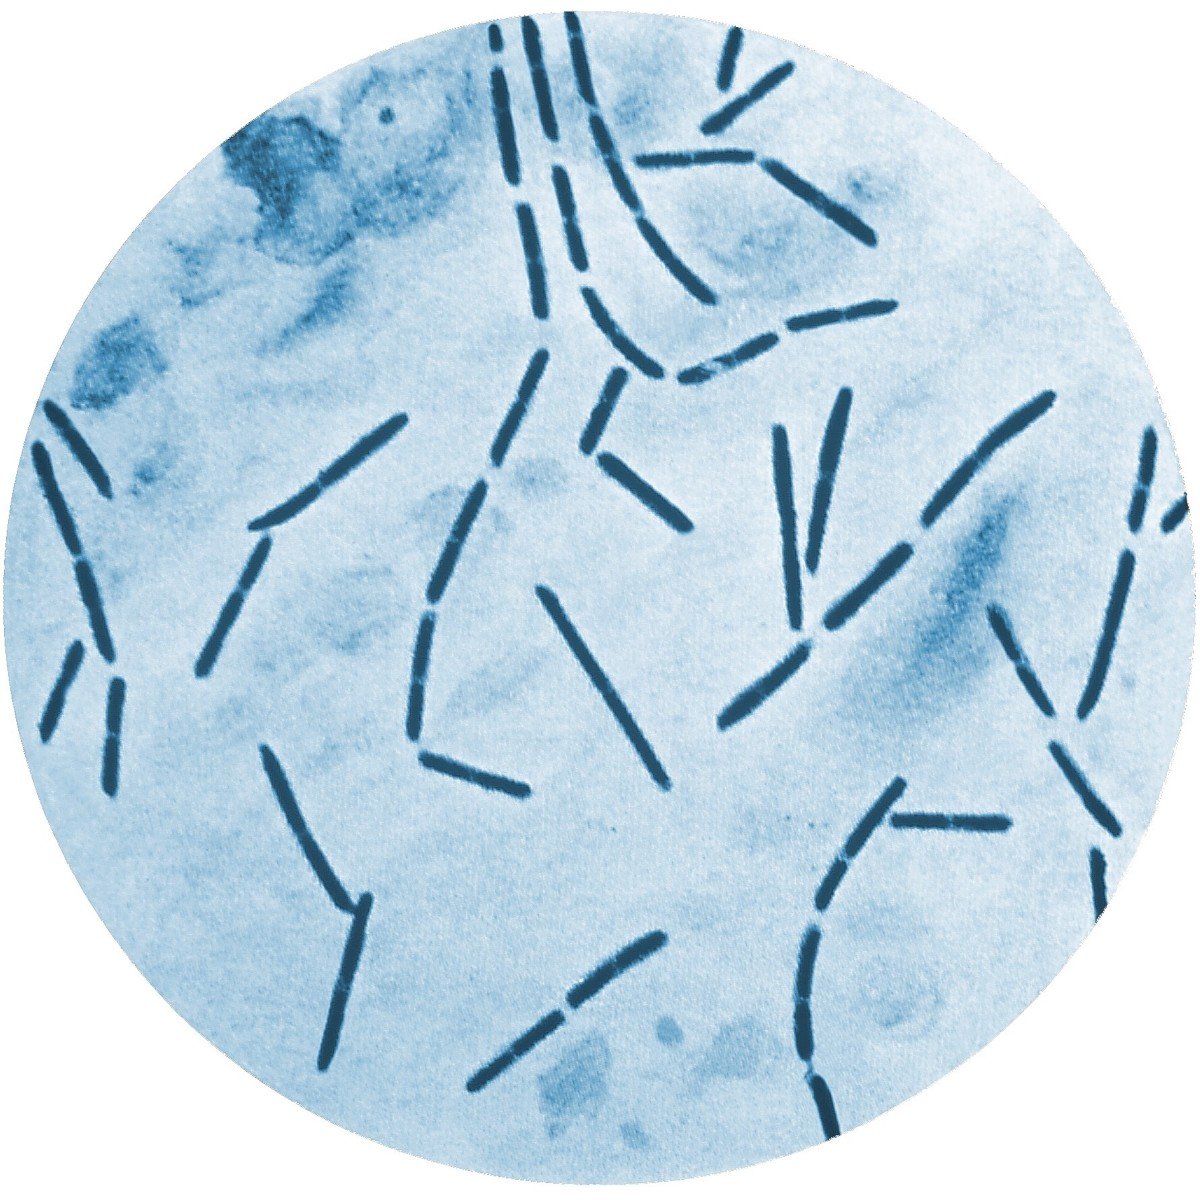 This is a slide of Clostridium septicum stained with methylene blue. The bacterium lives in our gut and can sometimes cause disease.